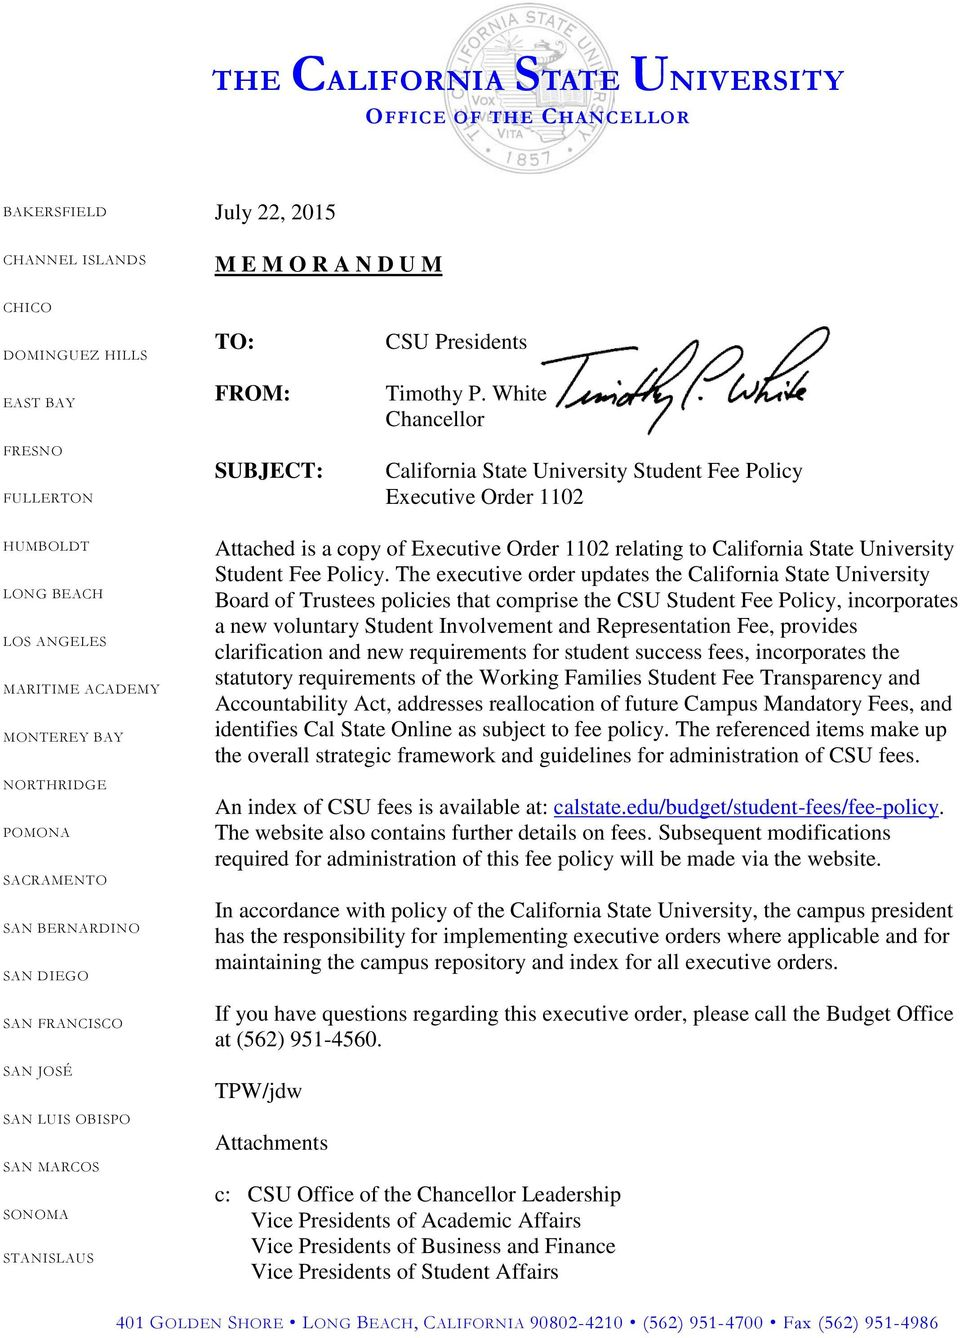 JOSÉ SAN LUIS OBISPO SAN MARCOS SONOMA STANISLAUS Attached is a copy of relating to California State University Student Fee Policy.